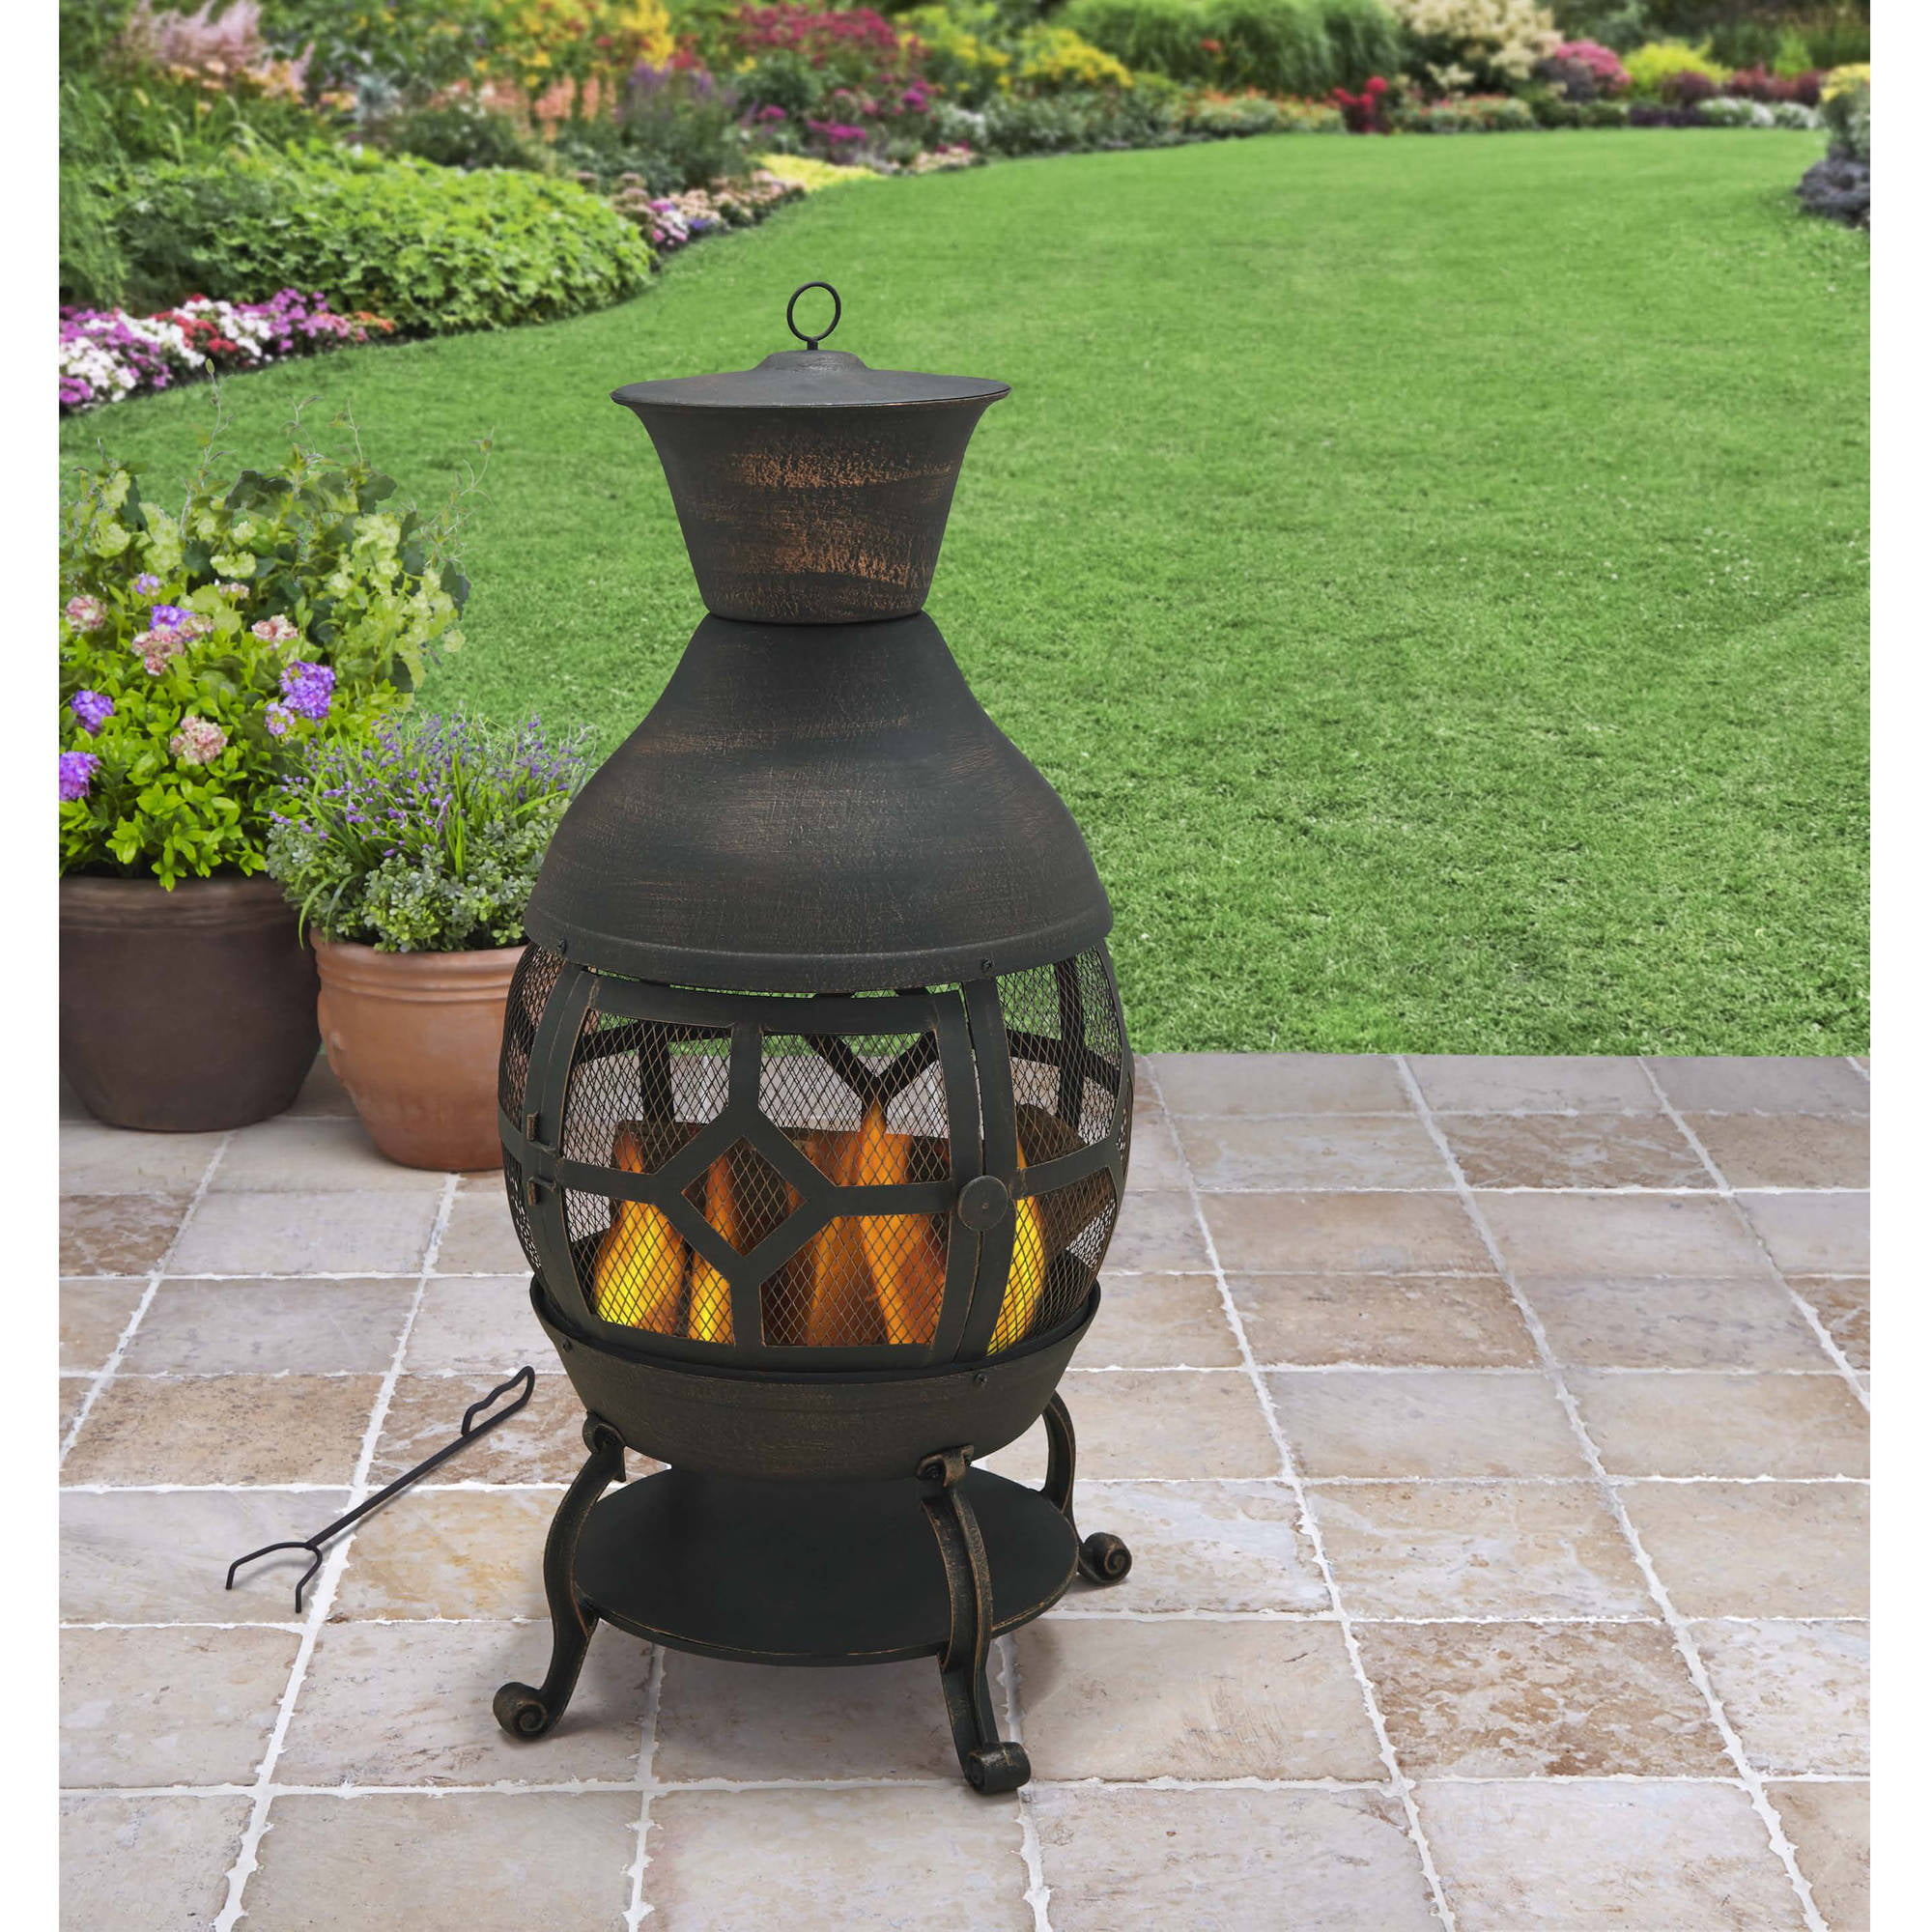 Better Homes and Gardens Cast Iron Chiminea Antique Bronze